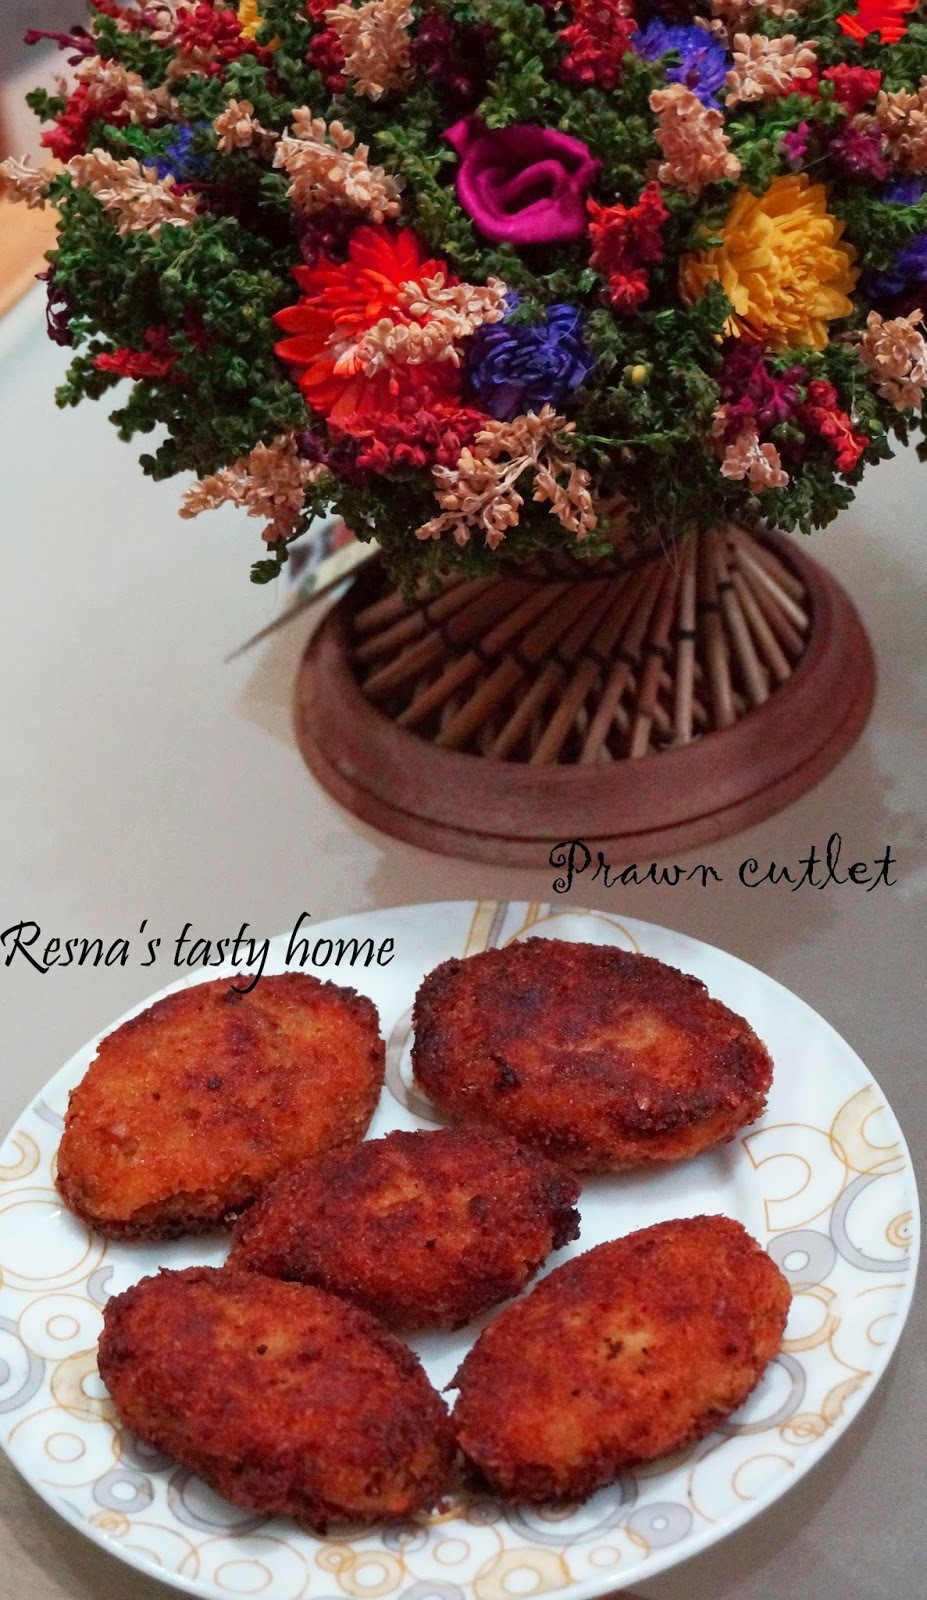 Prawn cutlet-with stepwise pictures